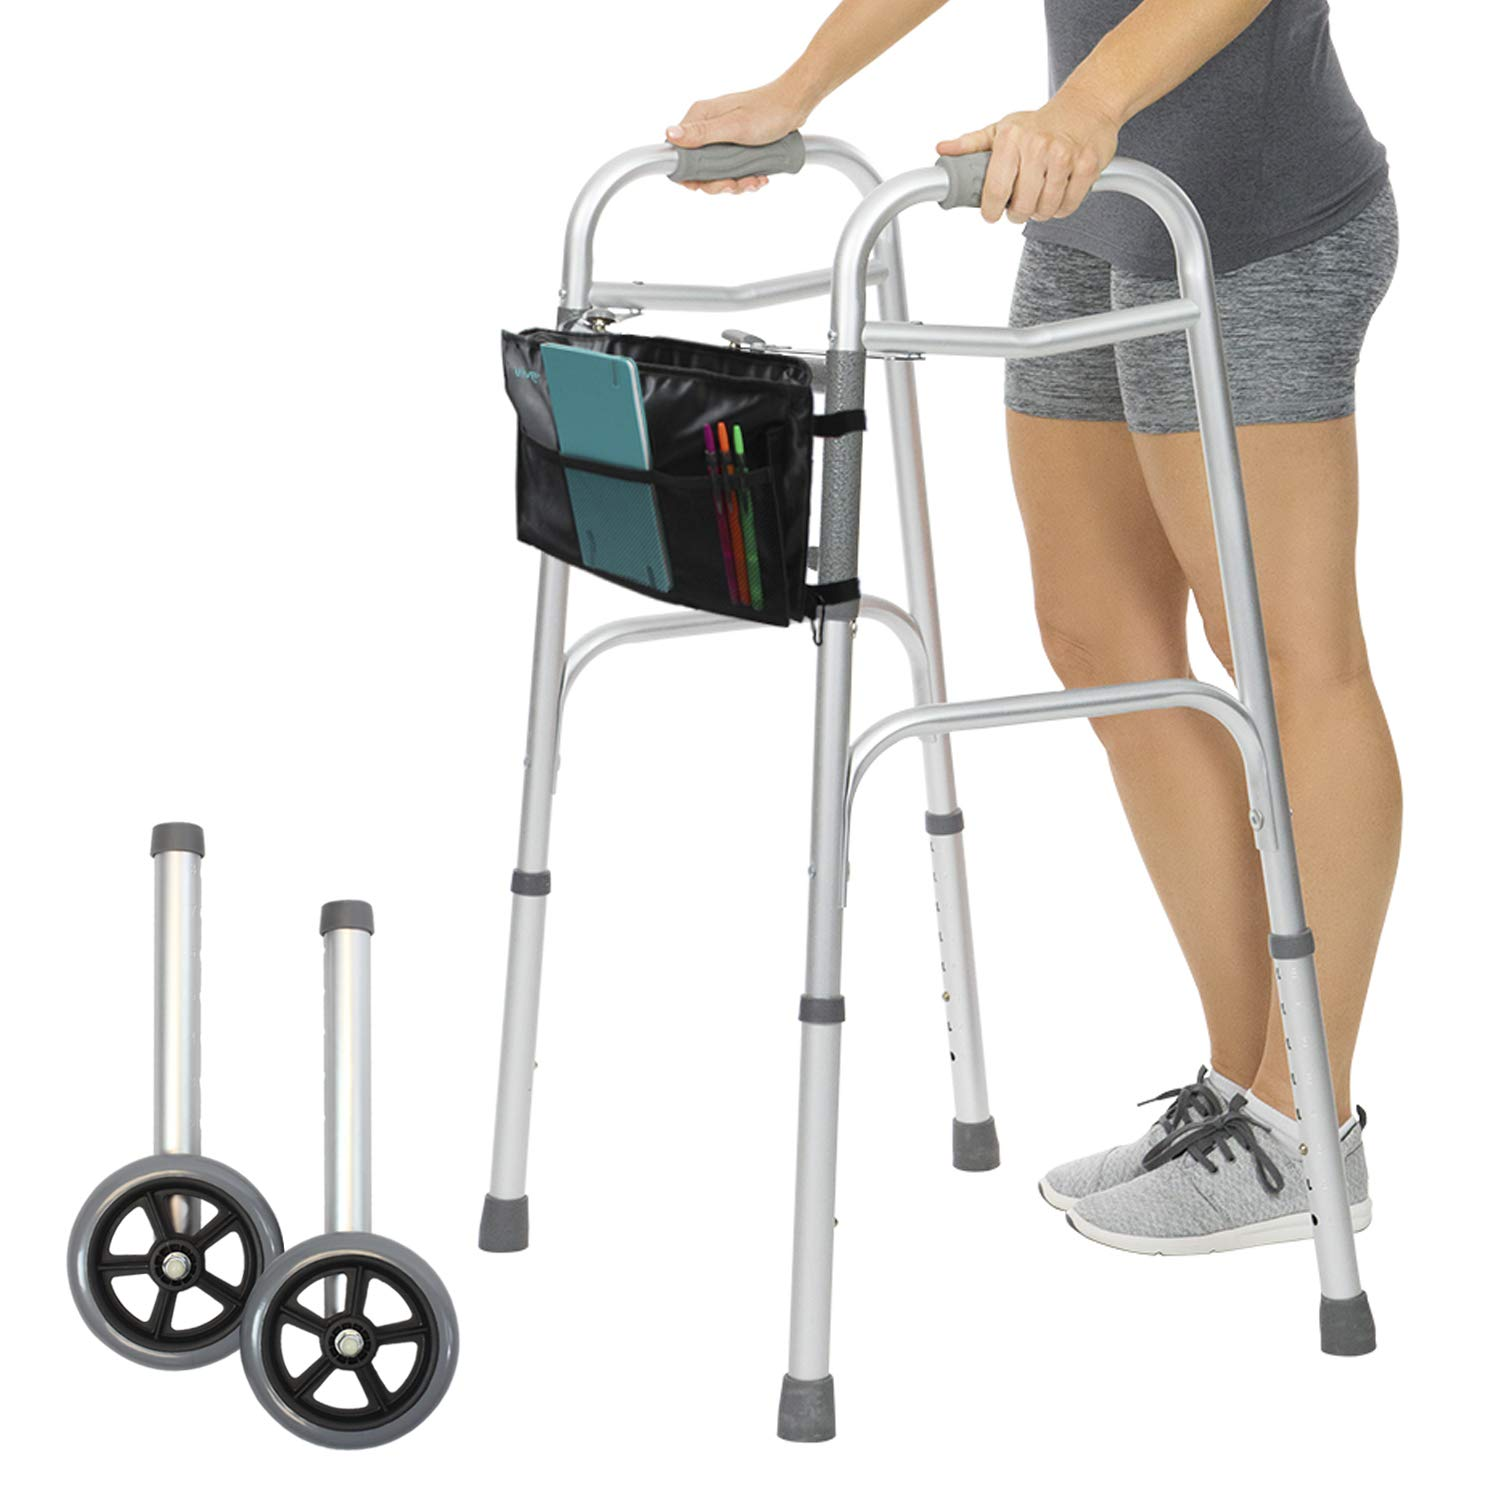 Vive Folding Walker [Plus Bag] - Front Wheeled Support, Narrow 23 Inch Wide - Adjustable, Portable, Lightweight, Compact Elderly Walking Medical Mobility Aid for Handicap - Push Button Open and Close